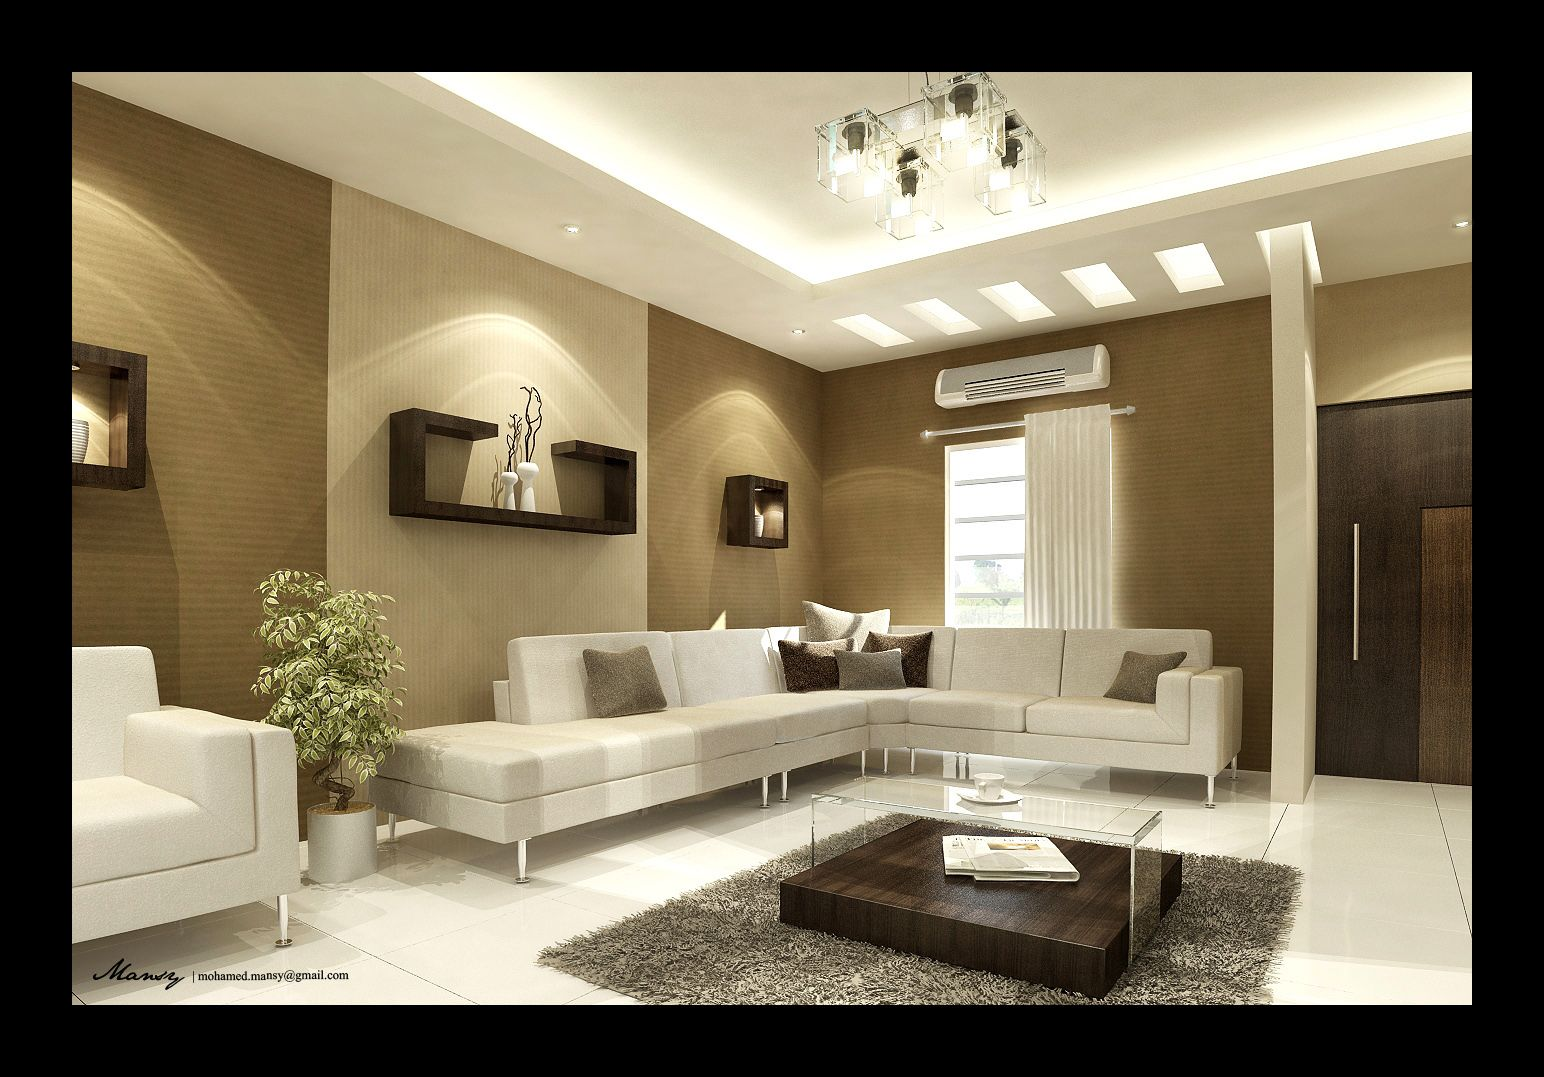 interior design styles living room - 1000+ images about Dream Home on Pinterest Mid continent, Garage ...